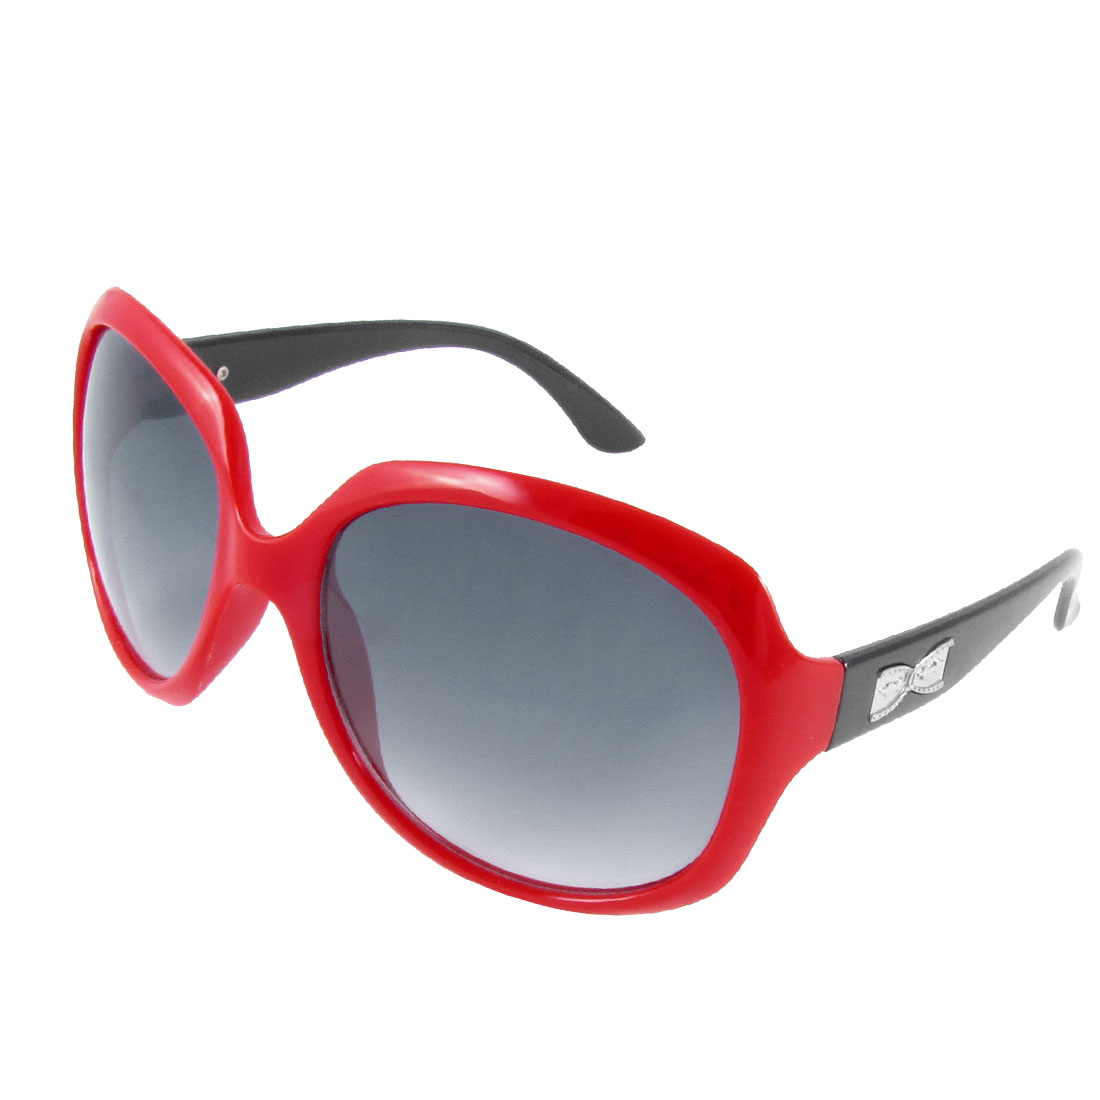 Red Plastic Full Frame Round Balck Lens Single Bridge Sunglasses for Women